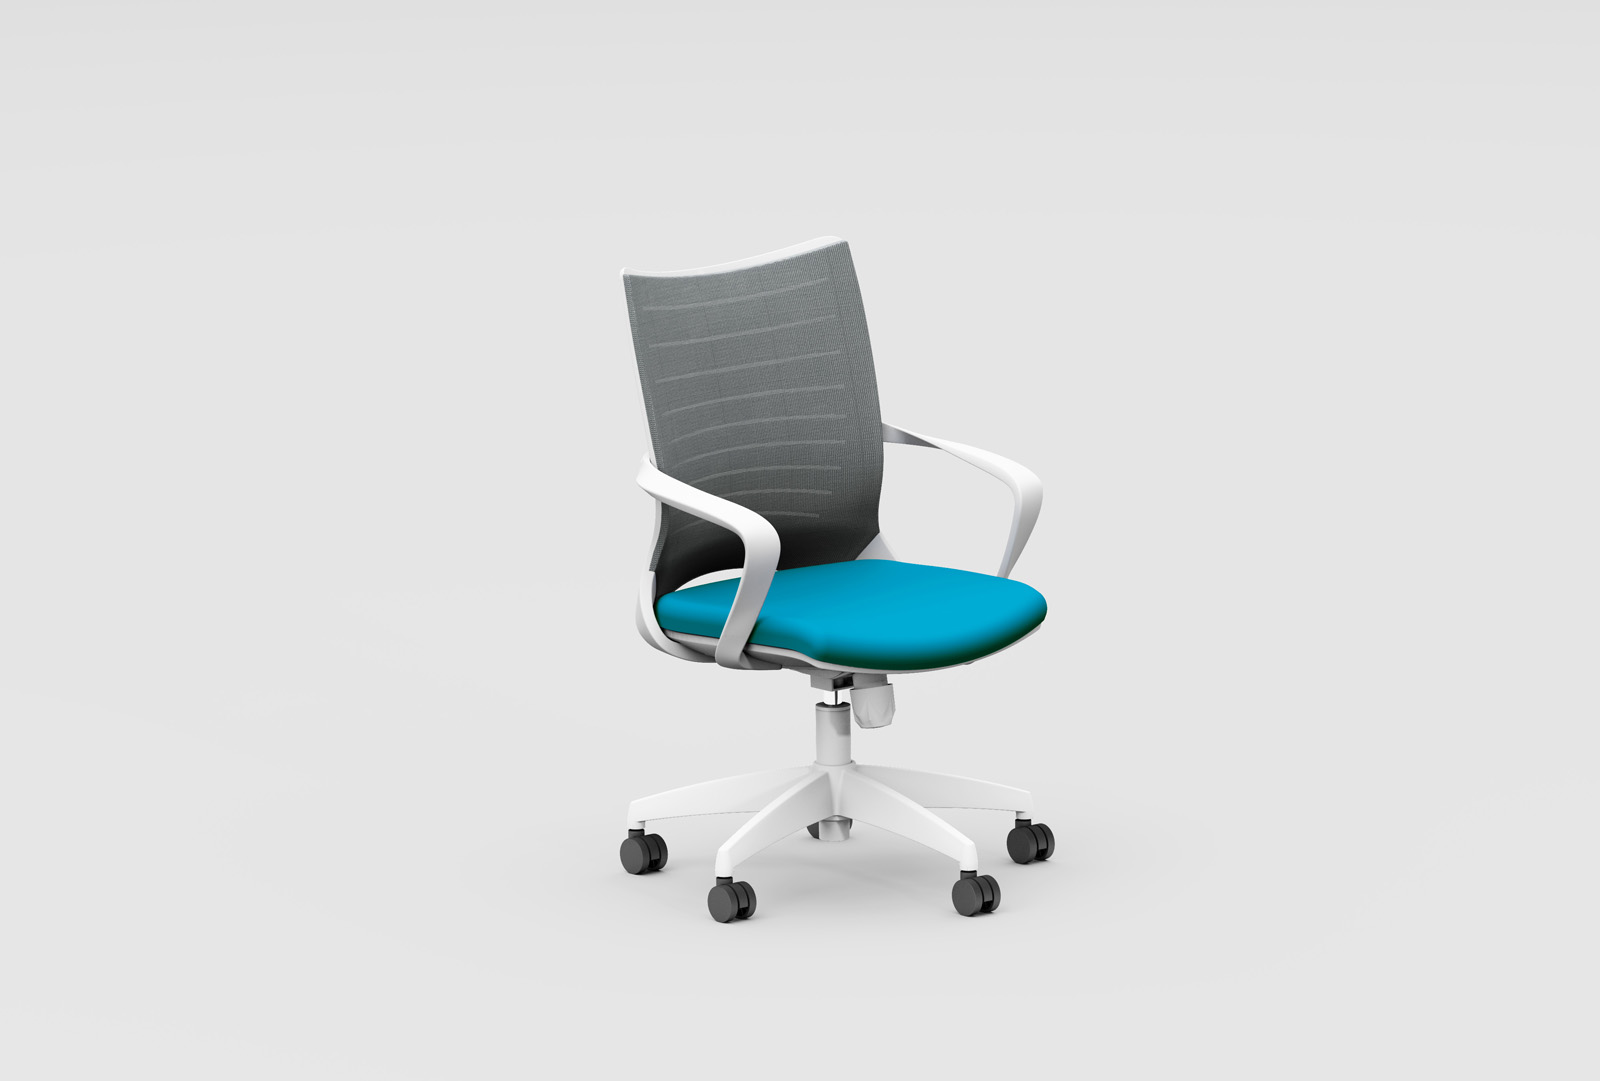 Medium Office Chair P-U001A /P-U001B/P-U001C/P-U001D